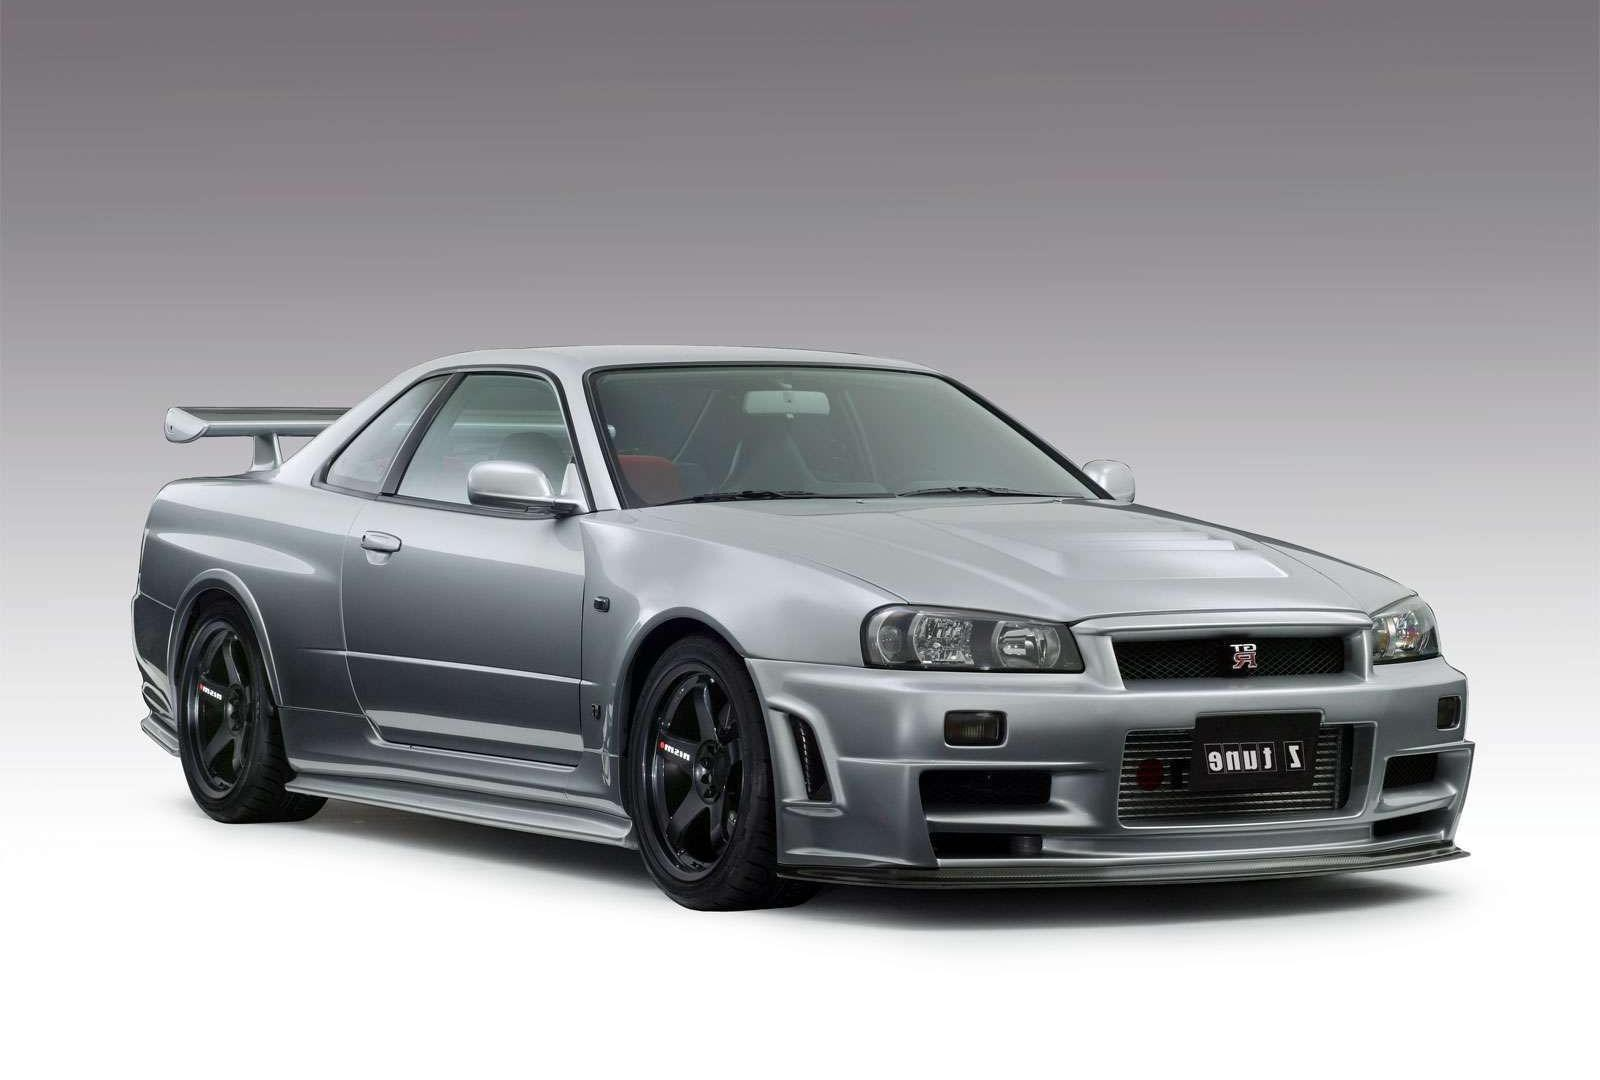 2014 Nissan skyline R34 Car Review - Car Wallpaper ...